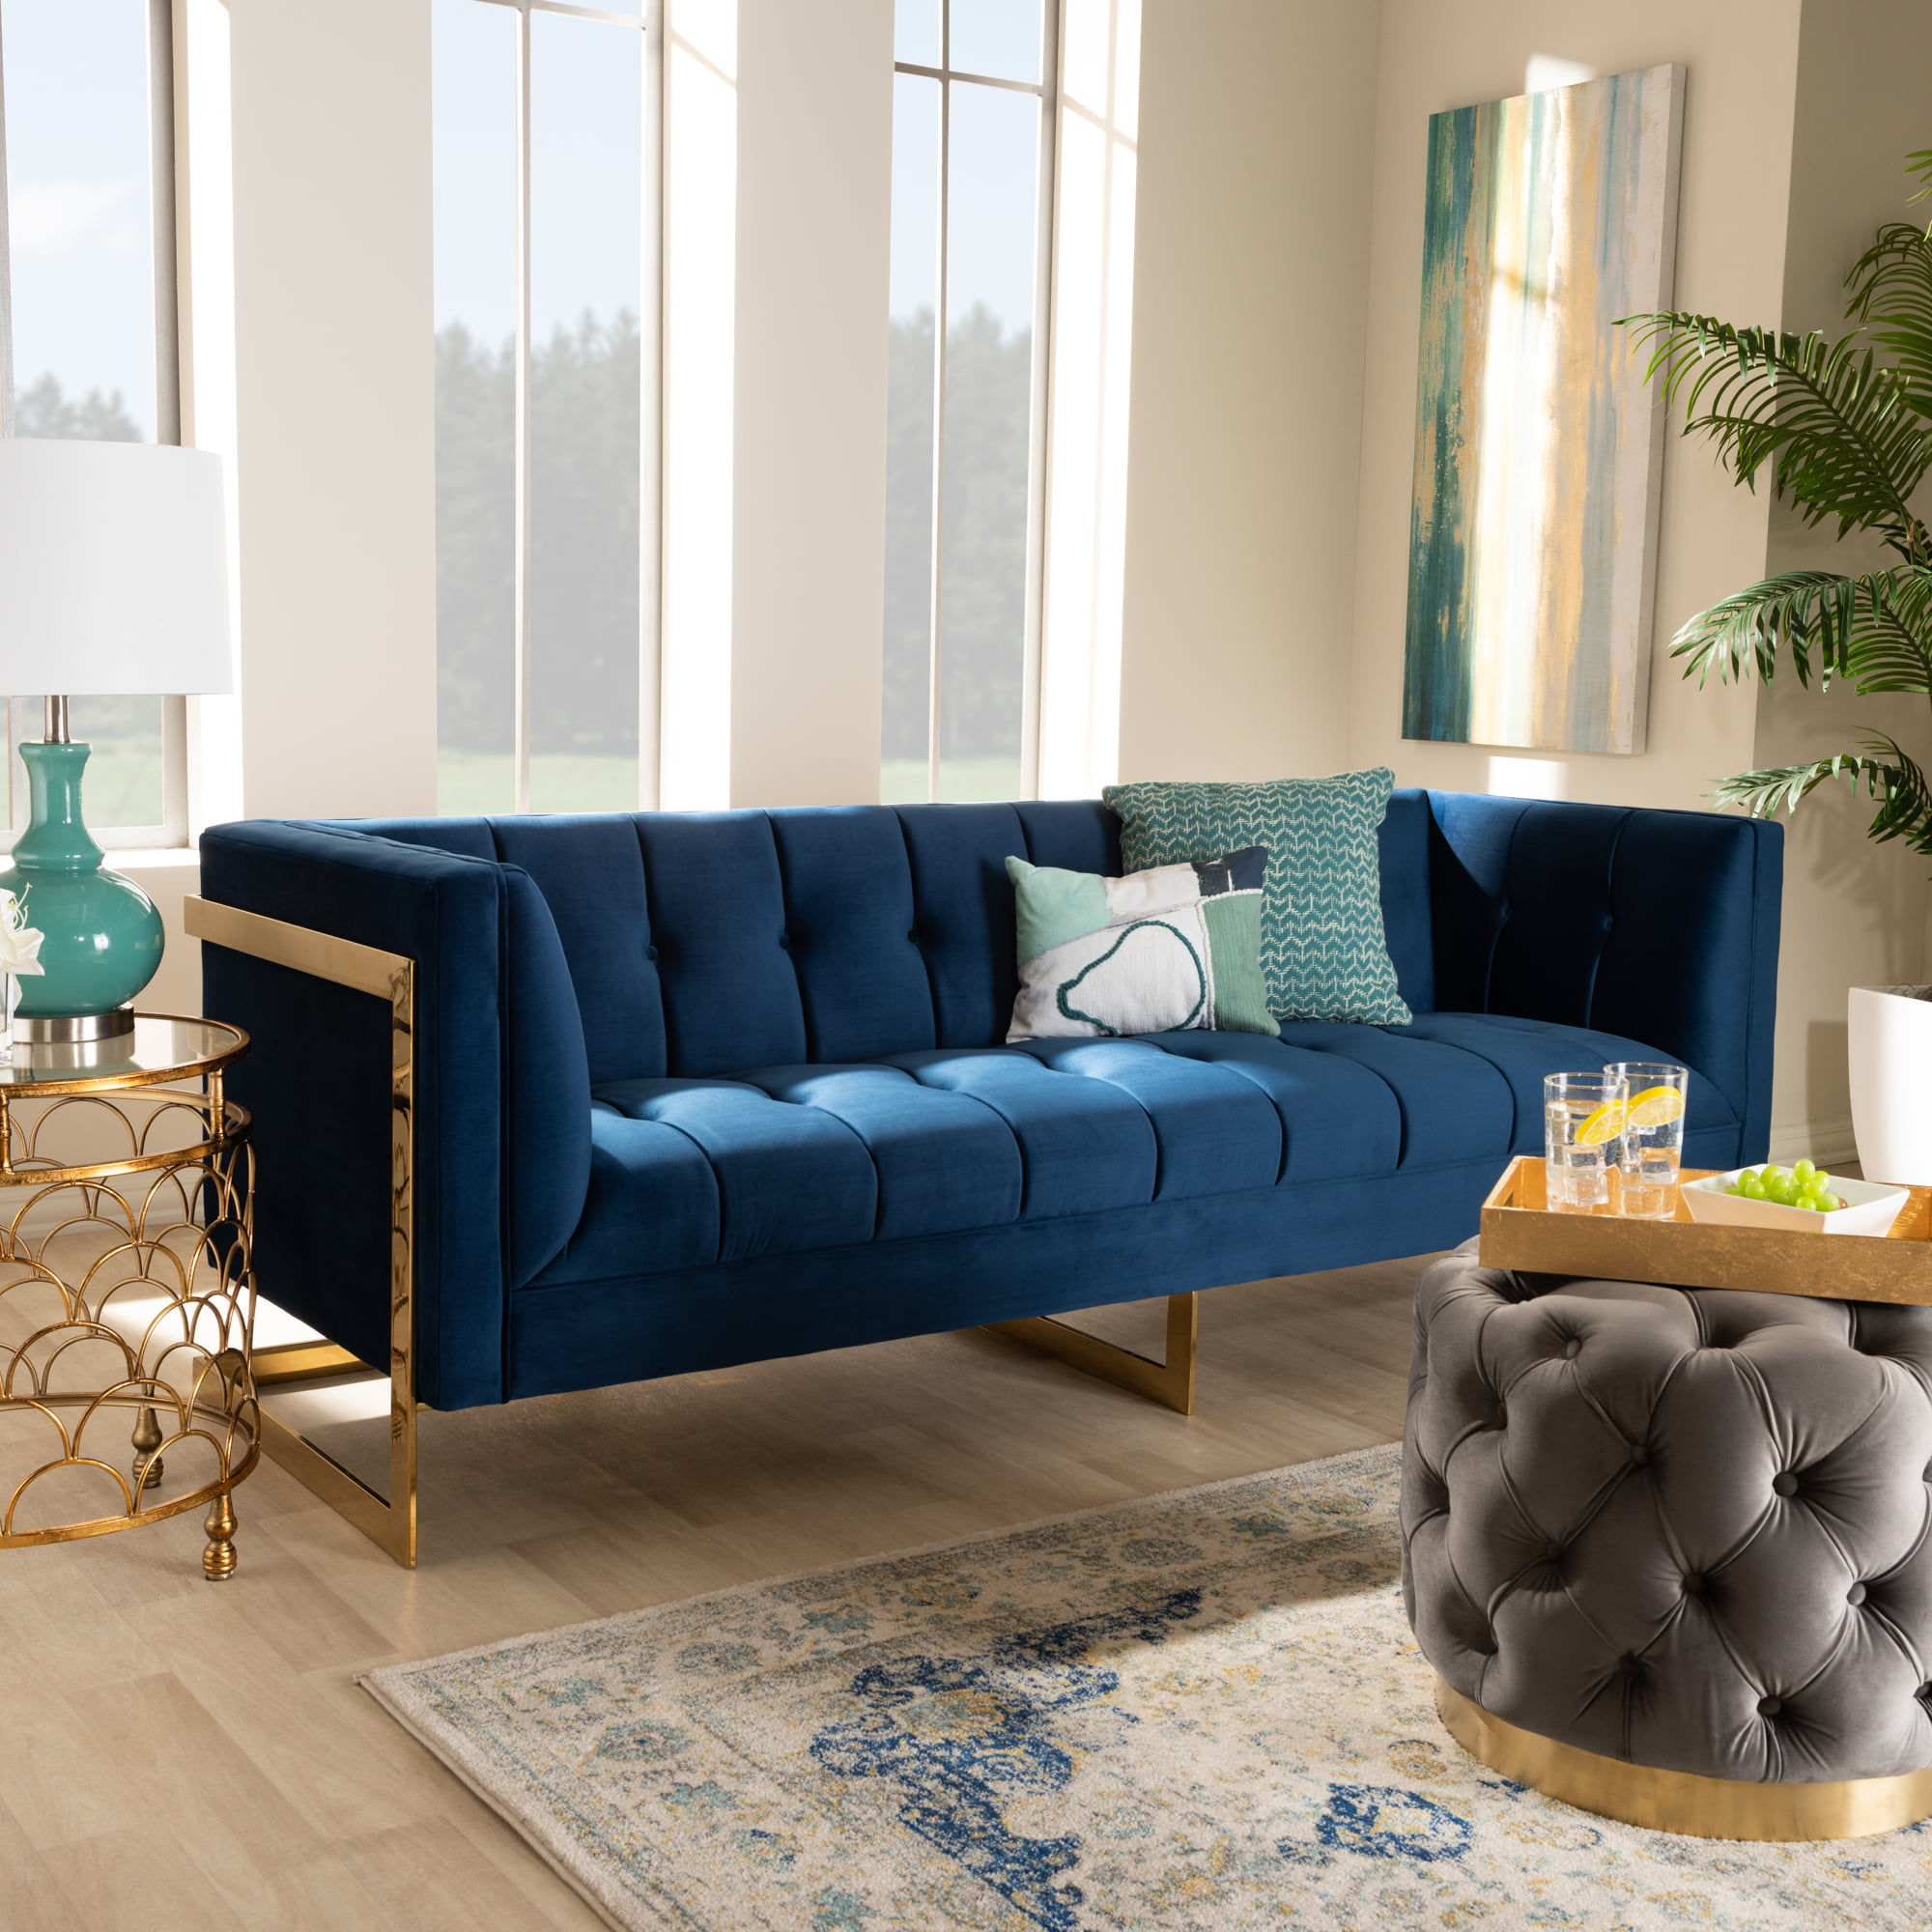 Baxton Studio Ambra Glam And Luxe Royal Blue Velvet Fabric Upholstered And Button Tufted Gold Sofa With Gold Tone Frame Walmart Com Walmart Com